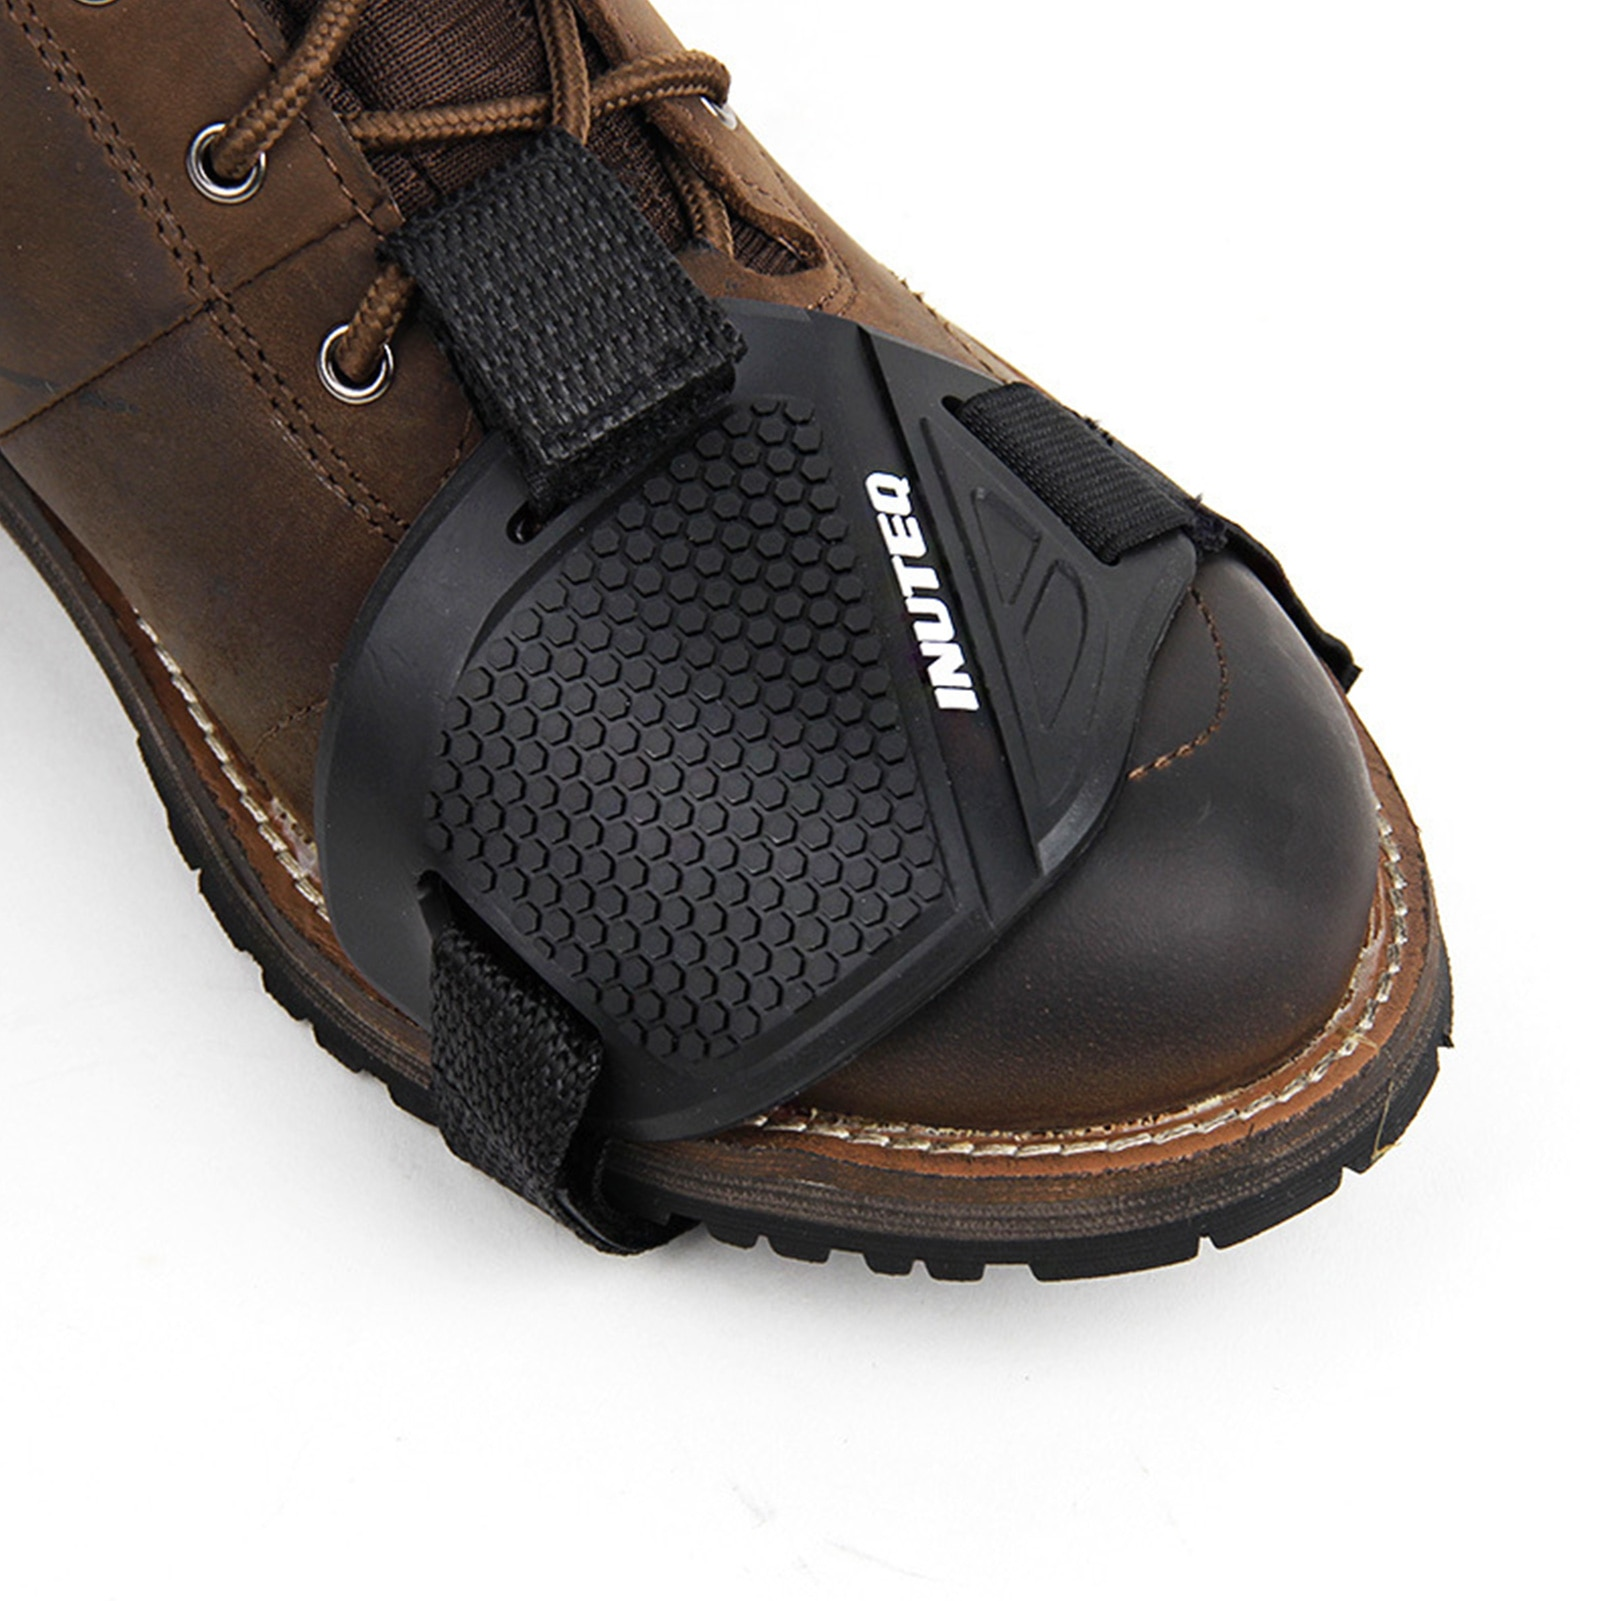 Rubber Motorcycle Shoes Protective Gear Shift Pad Moto Anti-skid Gear Shifter Lightweight Boot Cover